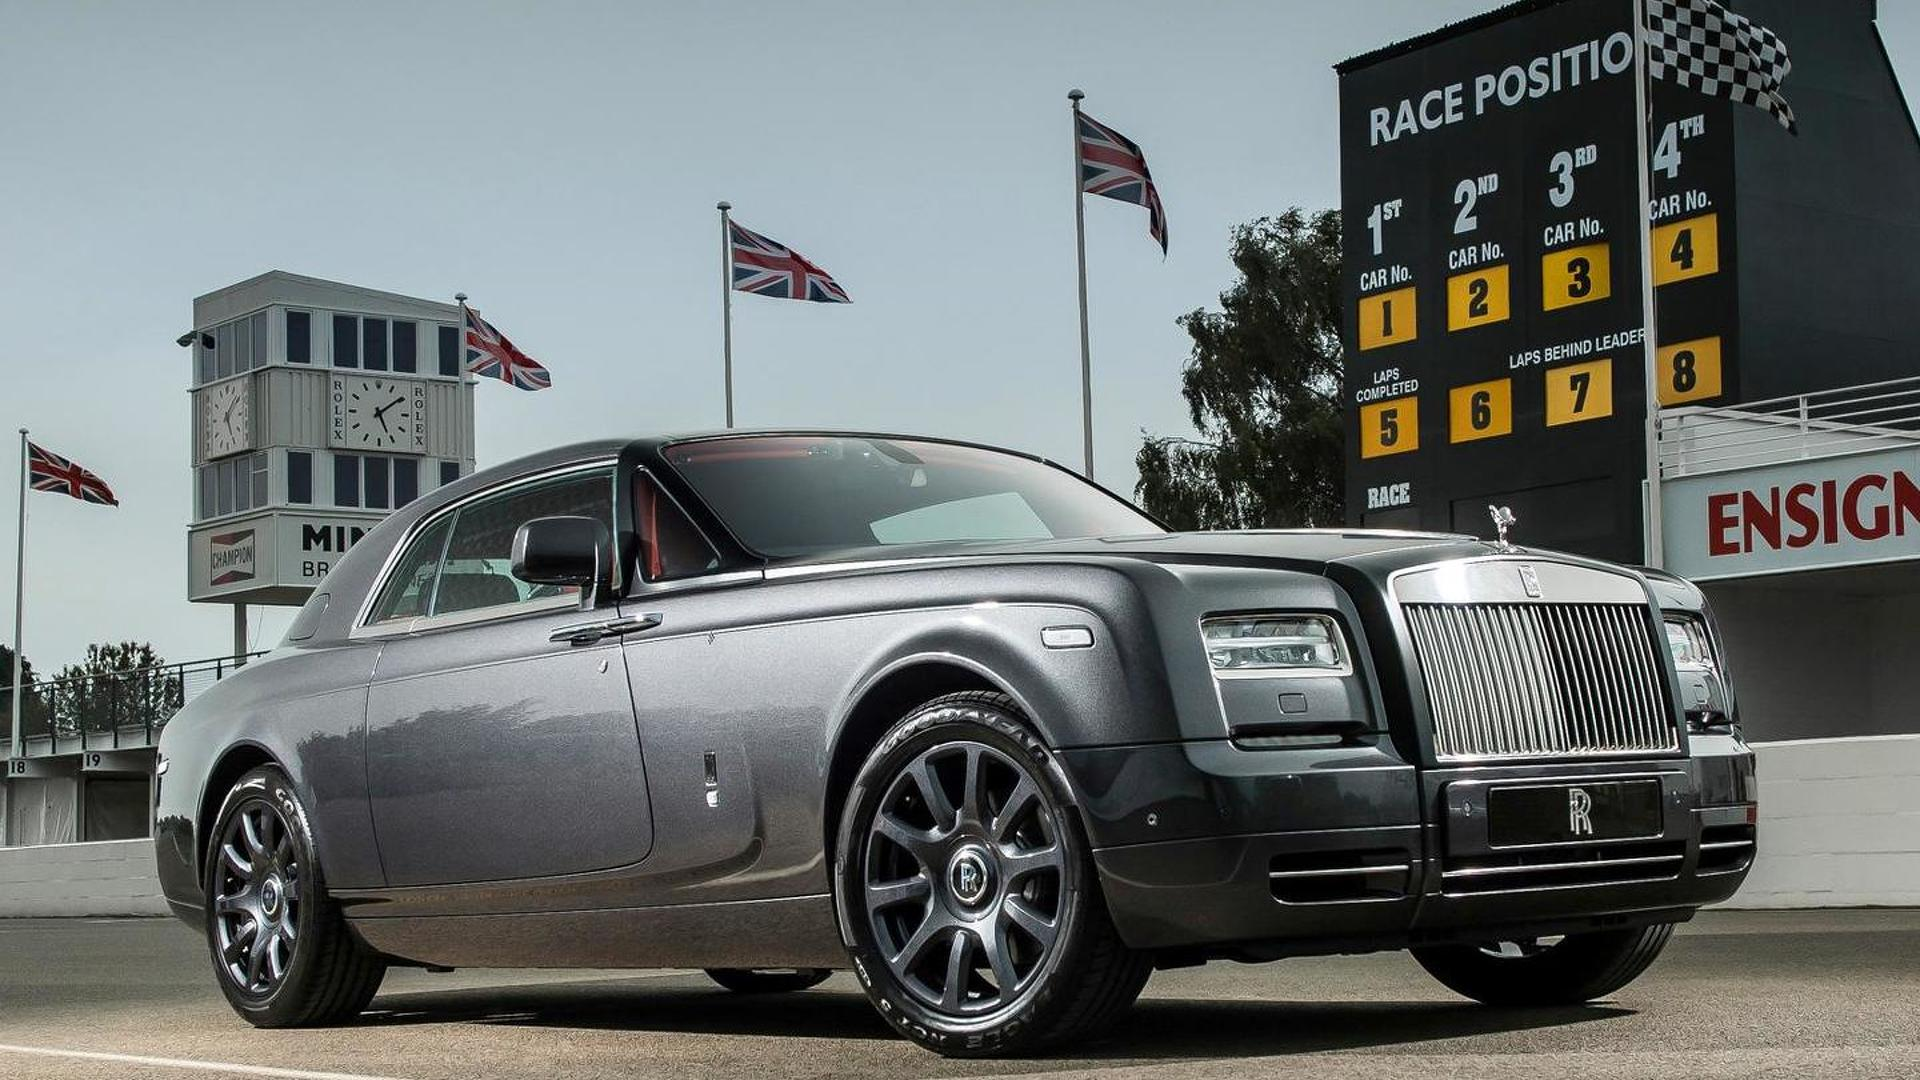 Rolls Royce Phantom Bespoke Chicane Coupe Introduced